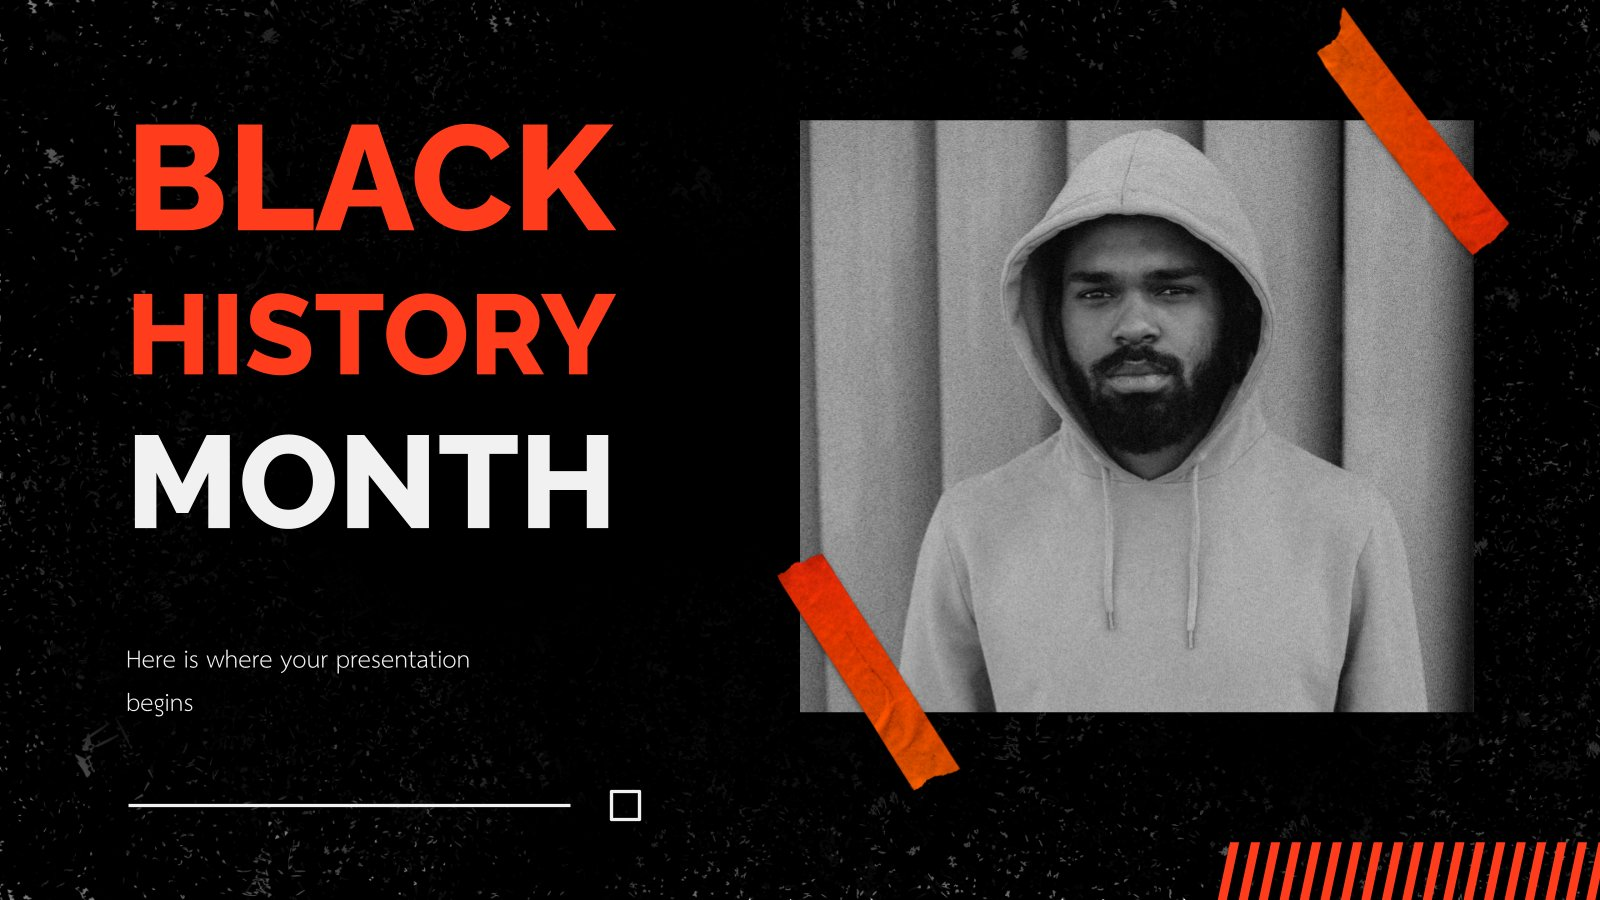 Black History Month presentation template